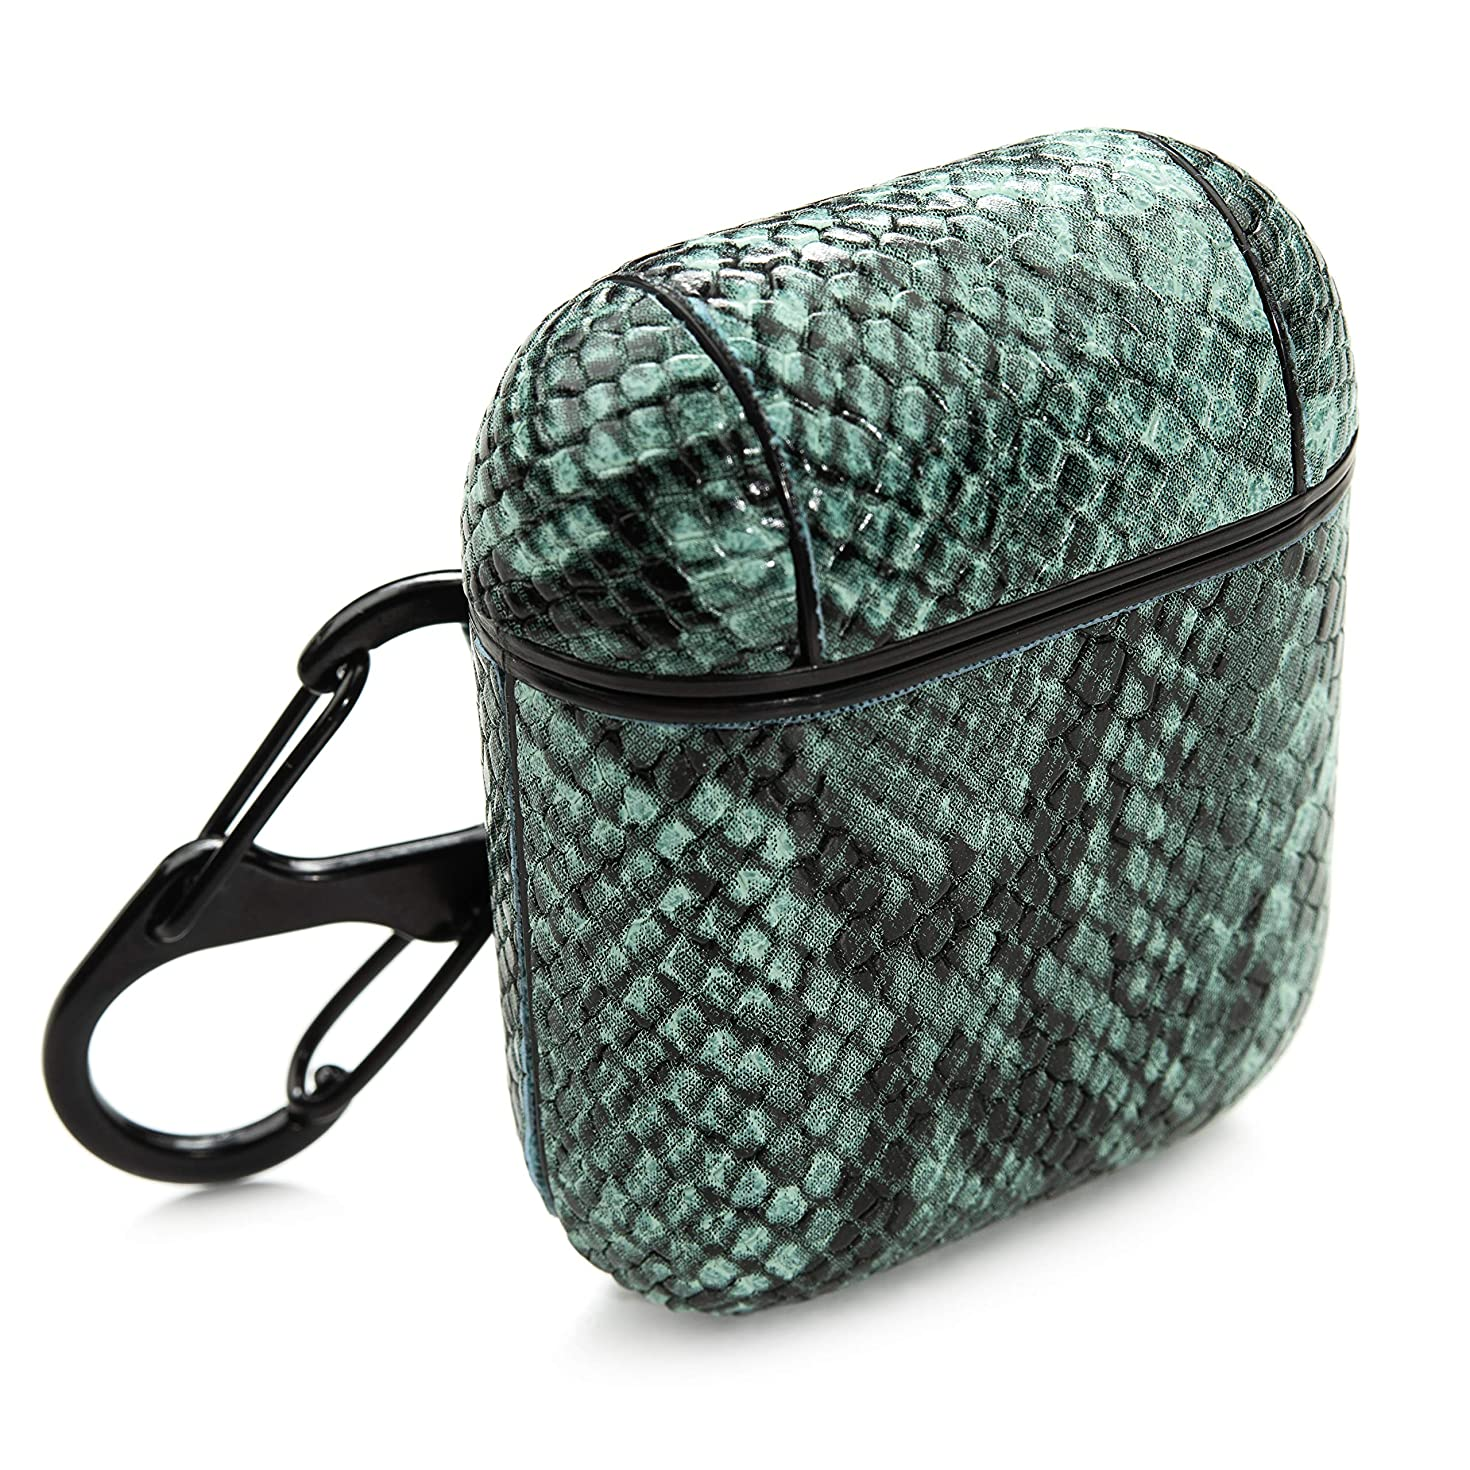 PeepCase Snake Skin AirPods Cases Covers for AirPod 1 & 2 with Wireless Charging Support and Clip (Green Croc)